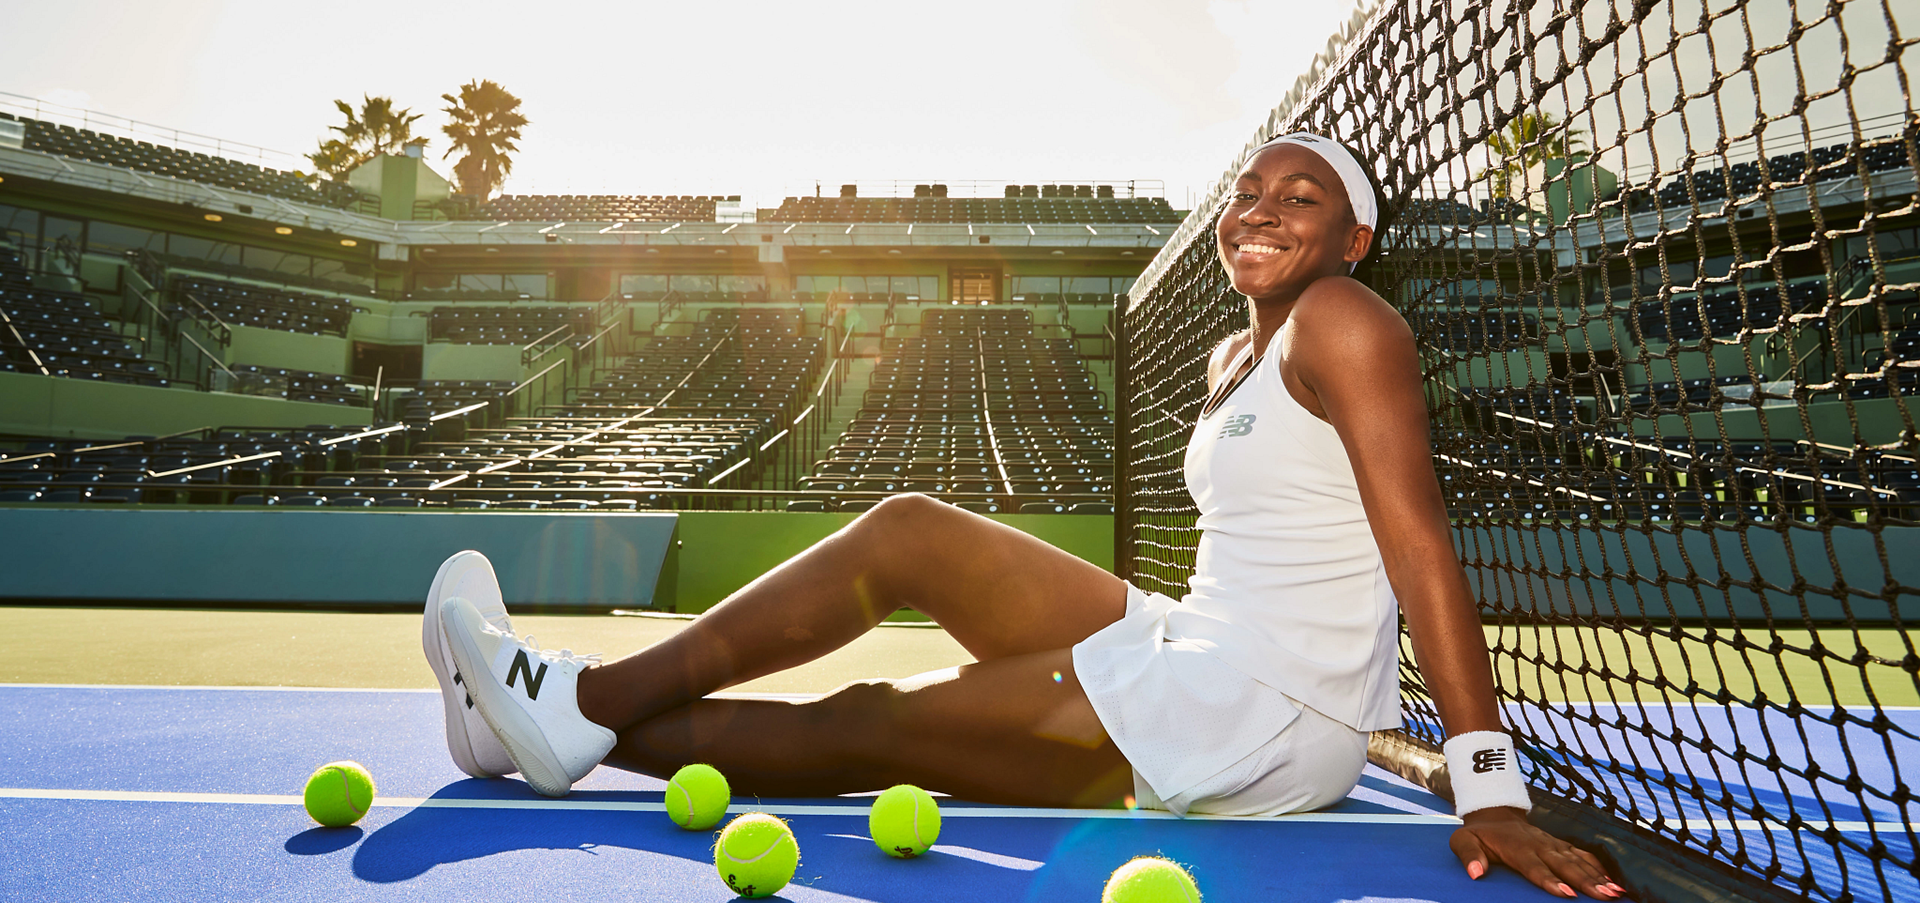 NEW BALANCE AND COCO GAUFF LAUNCH NEW 'WE GOT NOW' CAMPAIGN